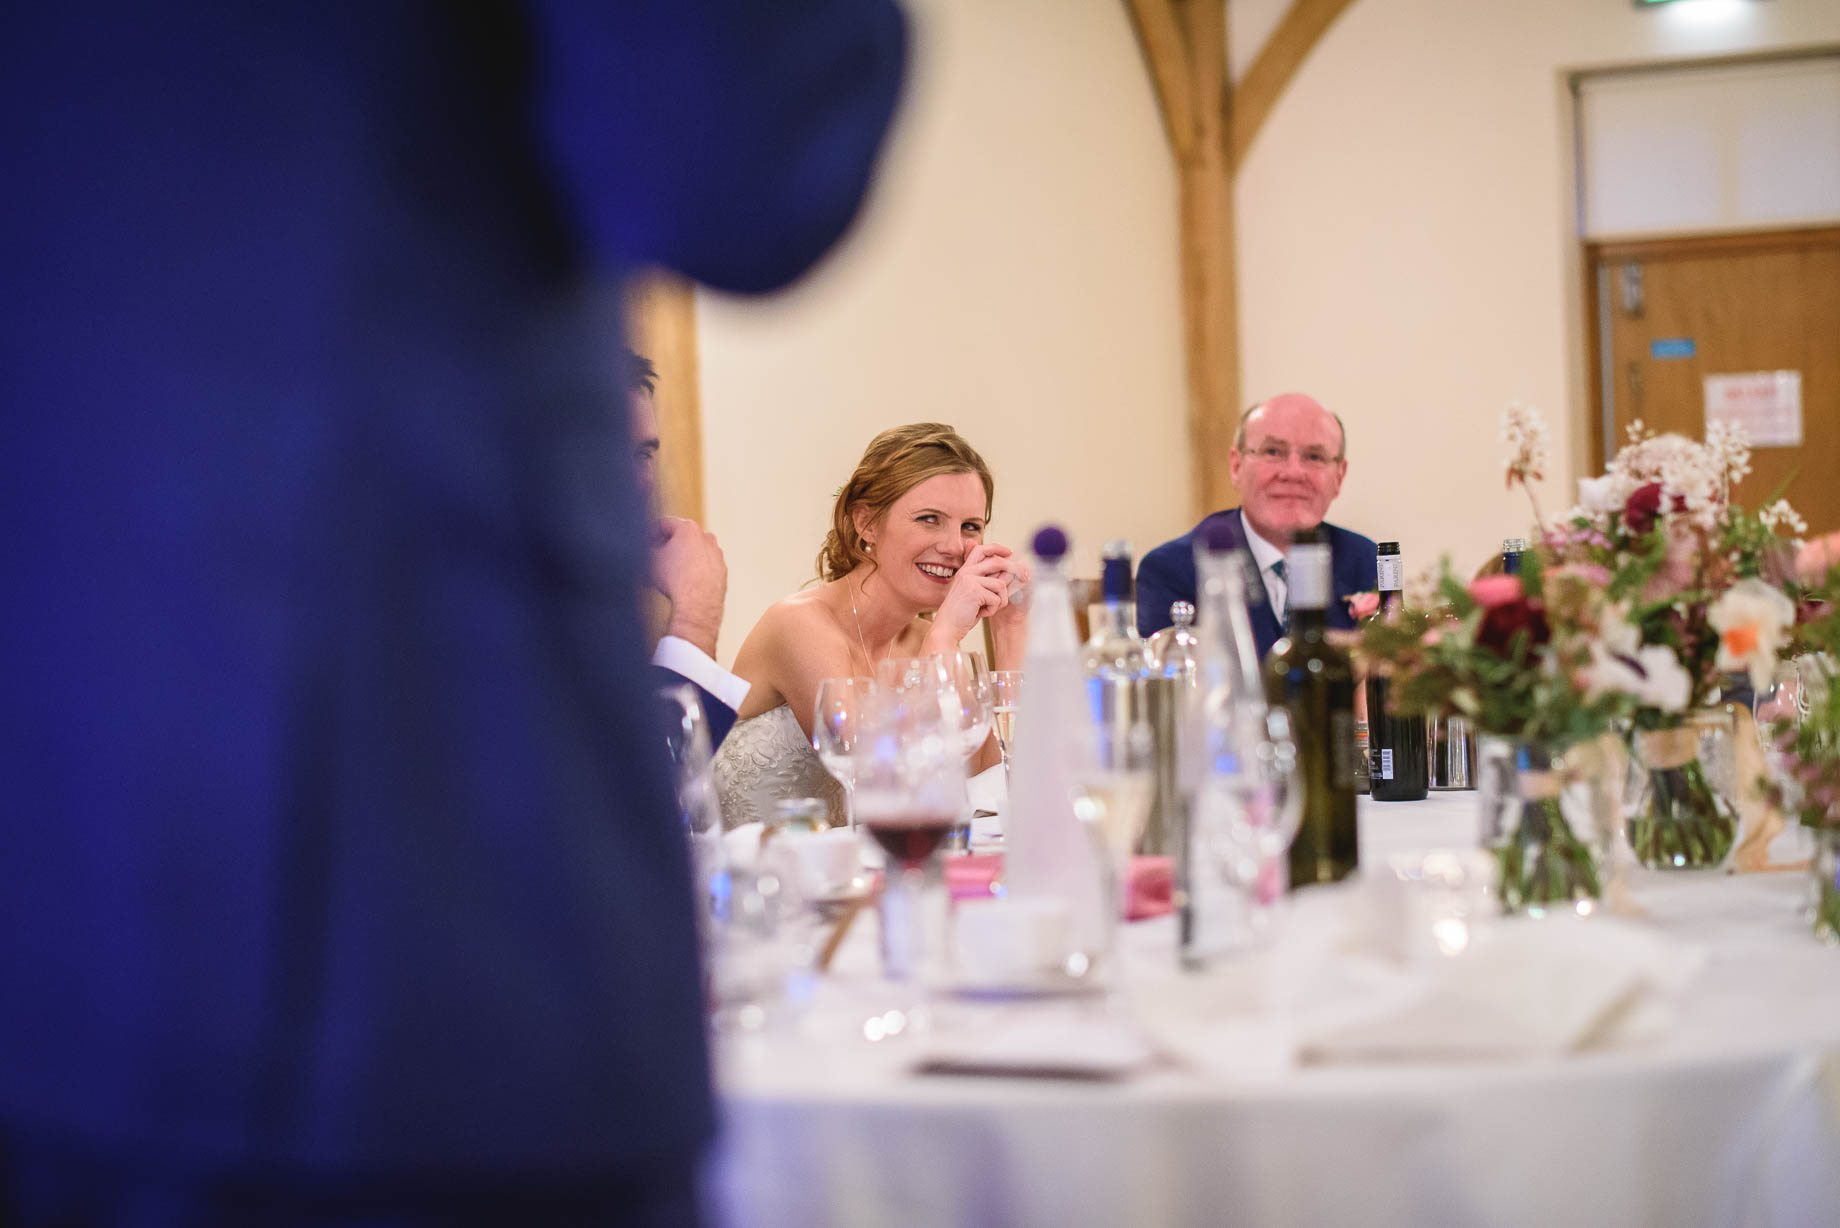 Rivervale Barn wedding photography by Guy Collier - Claire and Simon (123 of 133)